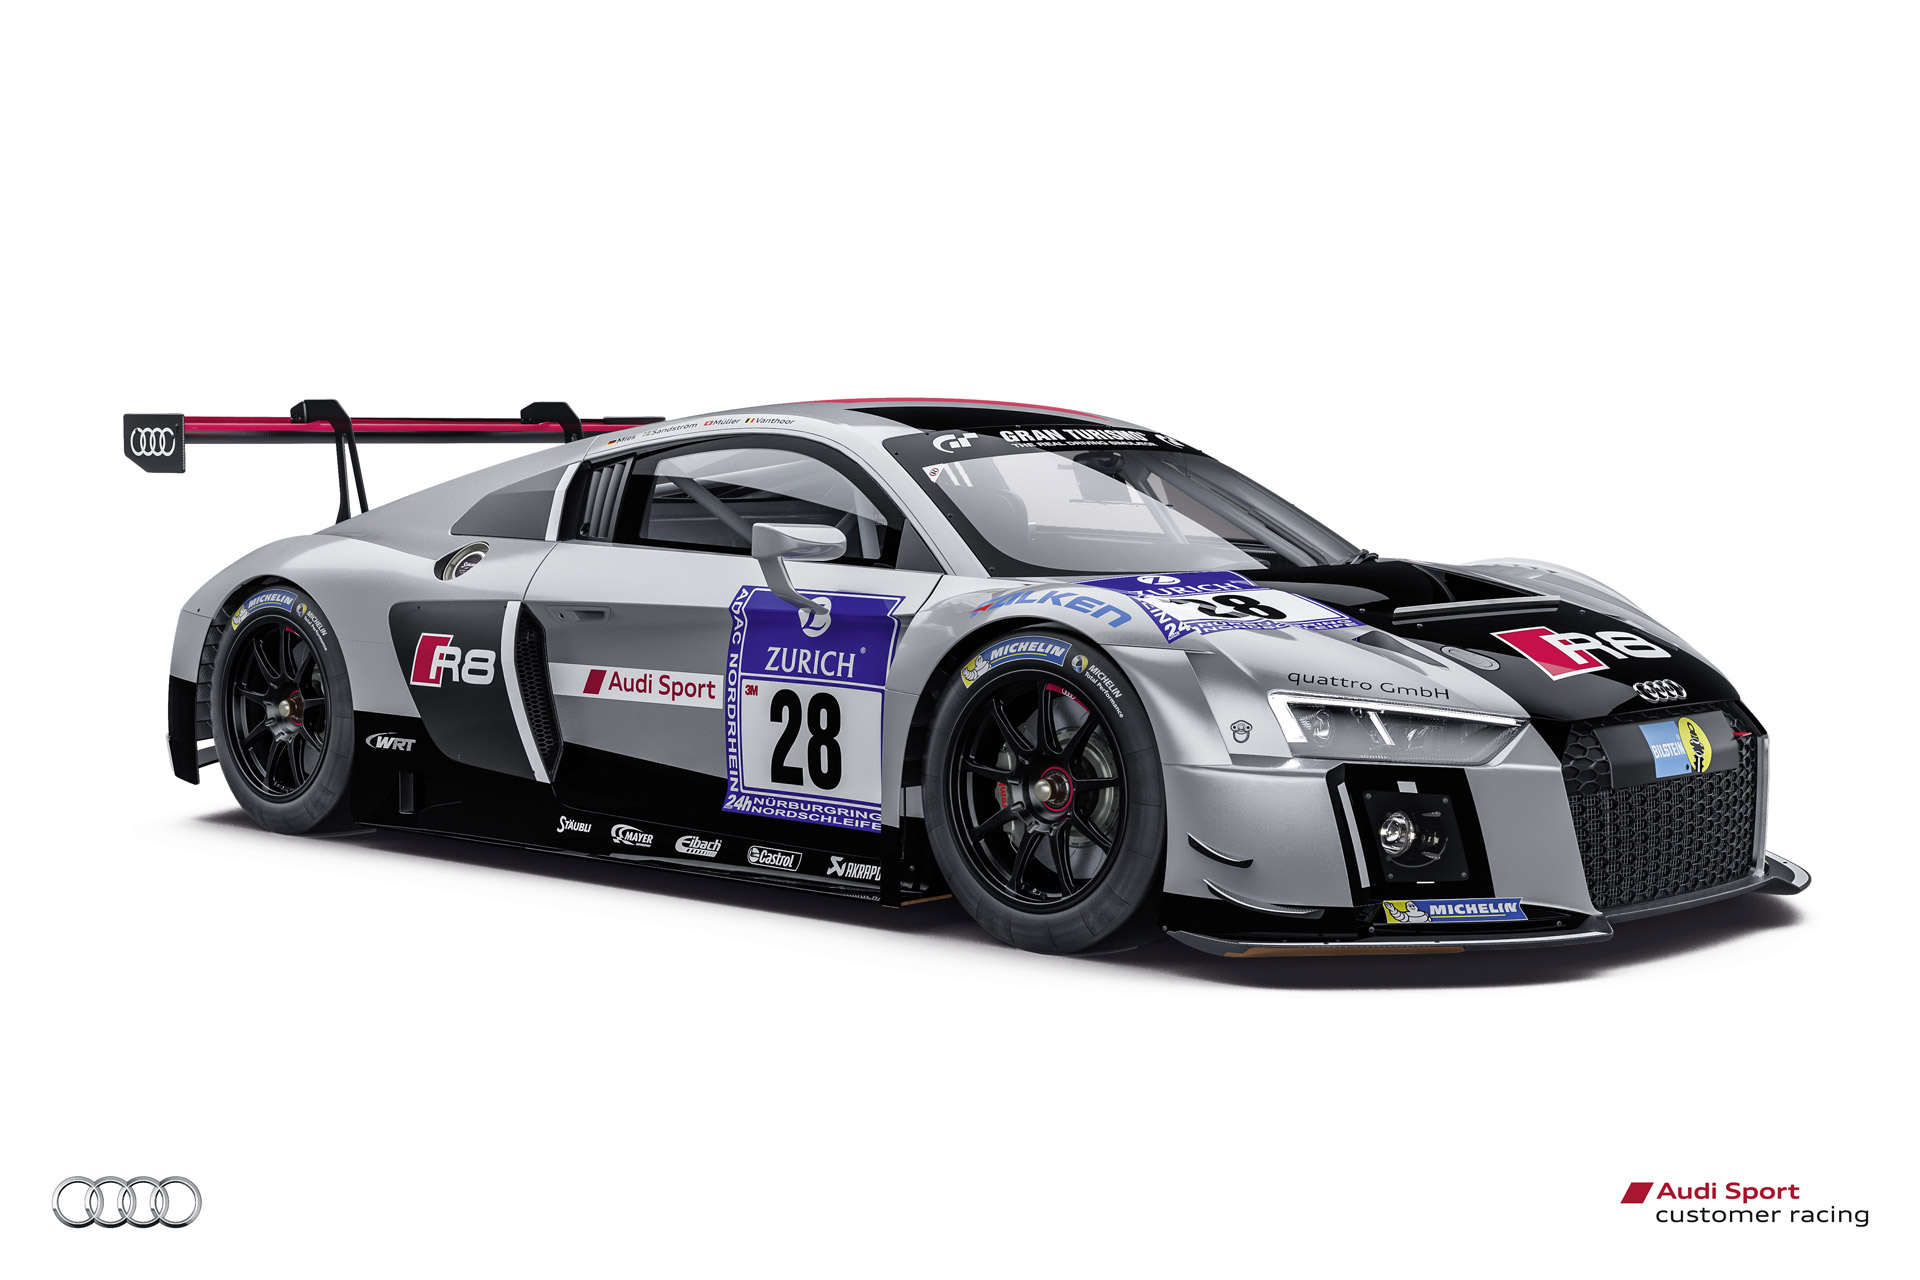 new audi r8 lms ready for 2015 n rburgring 24 hours race. Black Bedroom Furniture Sets. Home Design Ideas